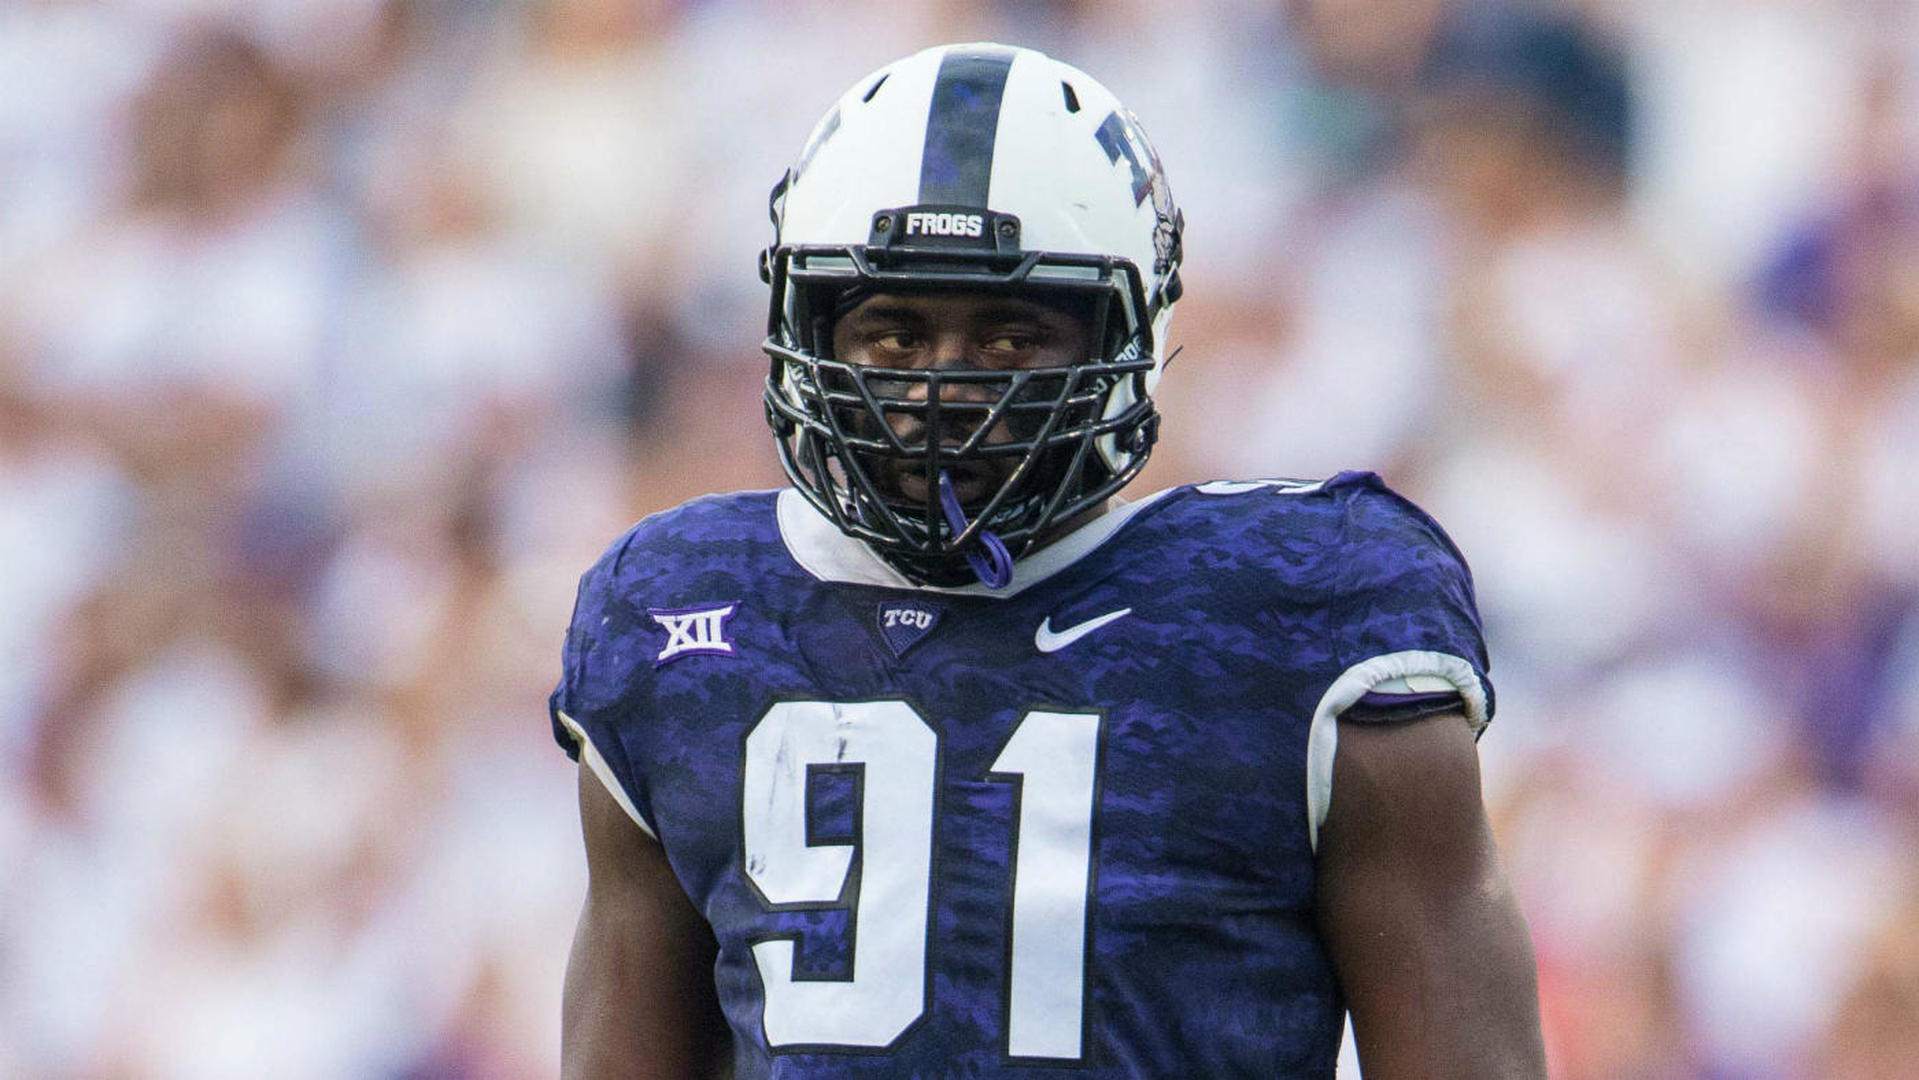 2019 NFL Draft Grades: Seahawks get a B+ for taking L.J. Collier to fill need for edge rusher